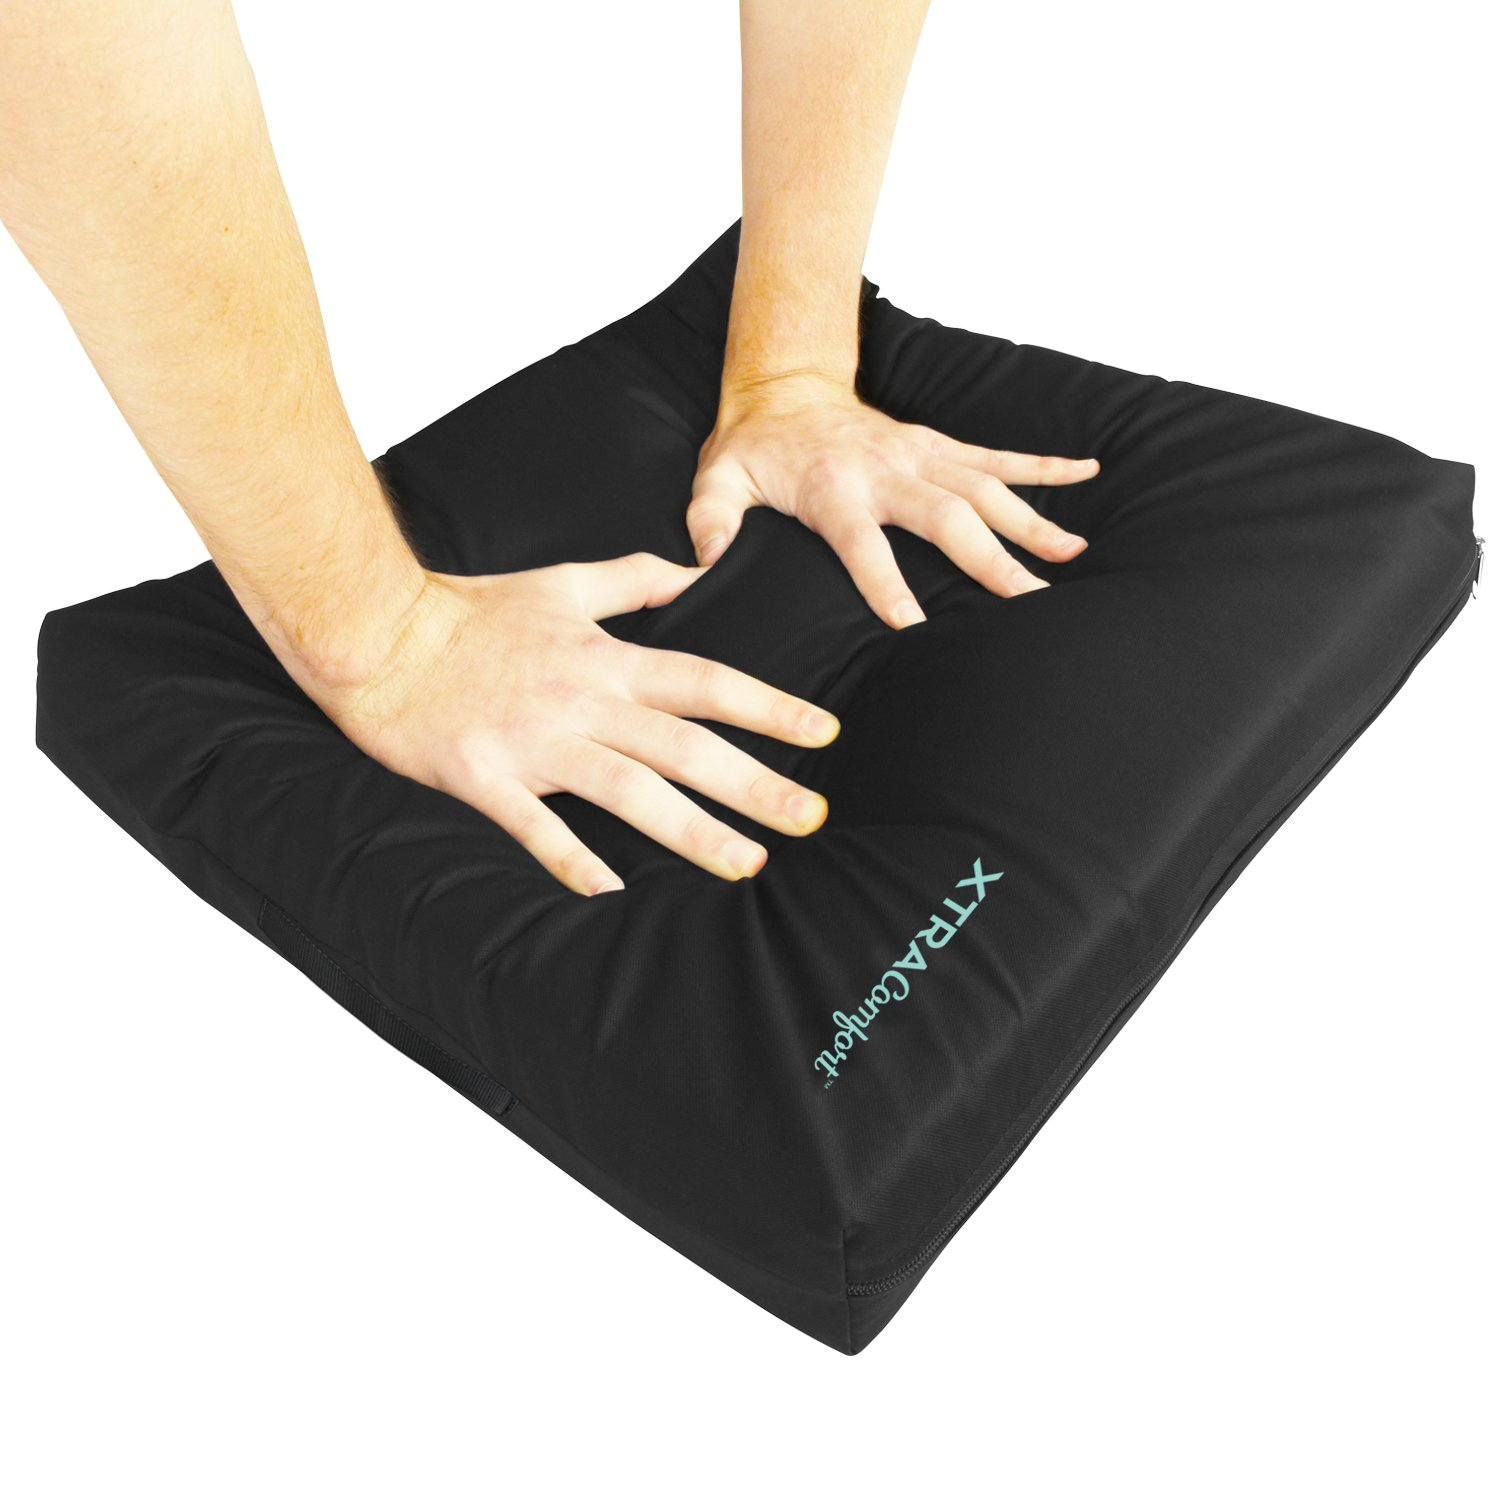 Wheelchair Cushion Xtra-Comfort Series - Gel Seat Pad for Coccyx, Back Support, Sciatica and Tailbone Pain Relief - Waterproof Cover + 4 Layer Foam Support - for Pressure Sores and Ulcers